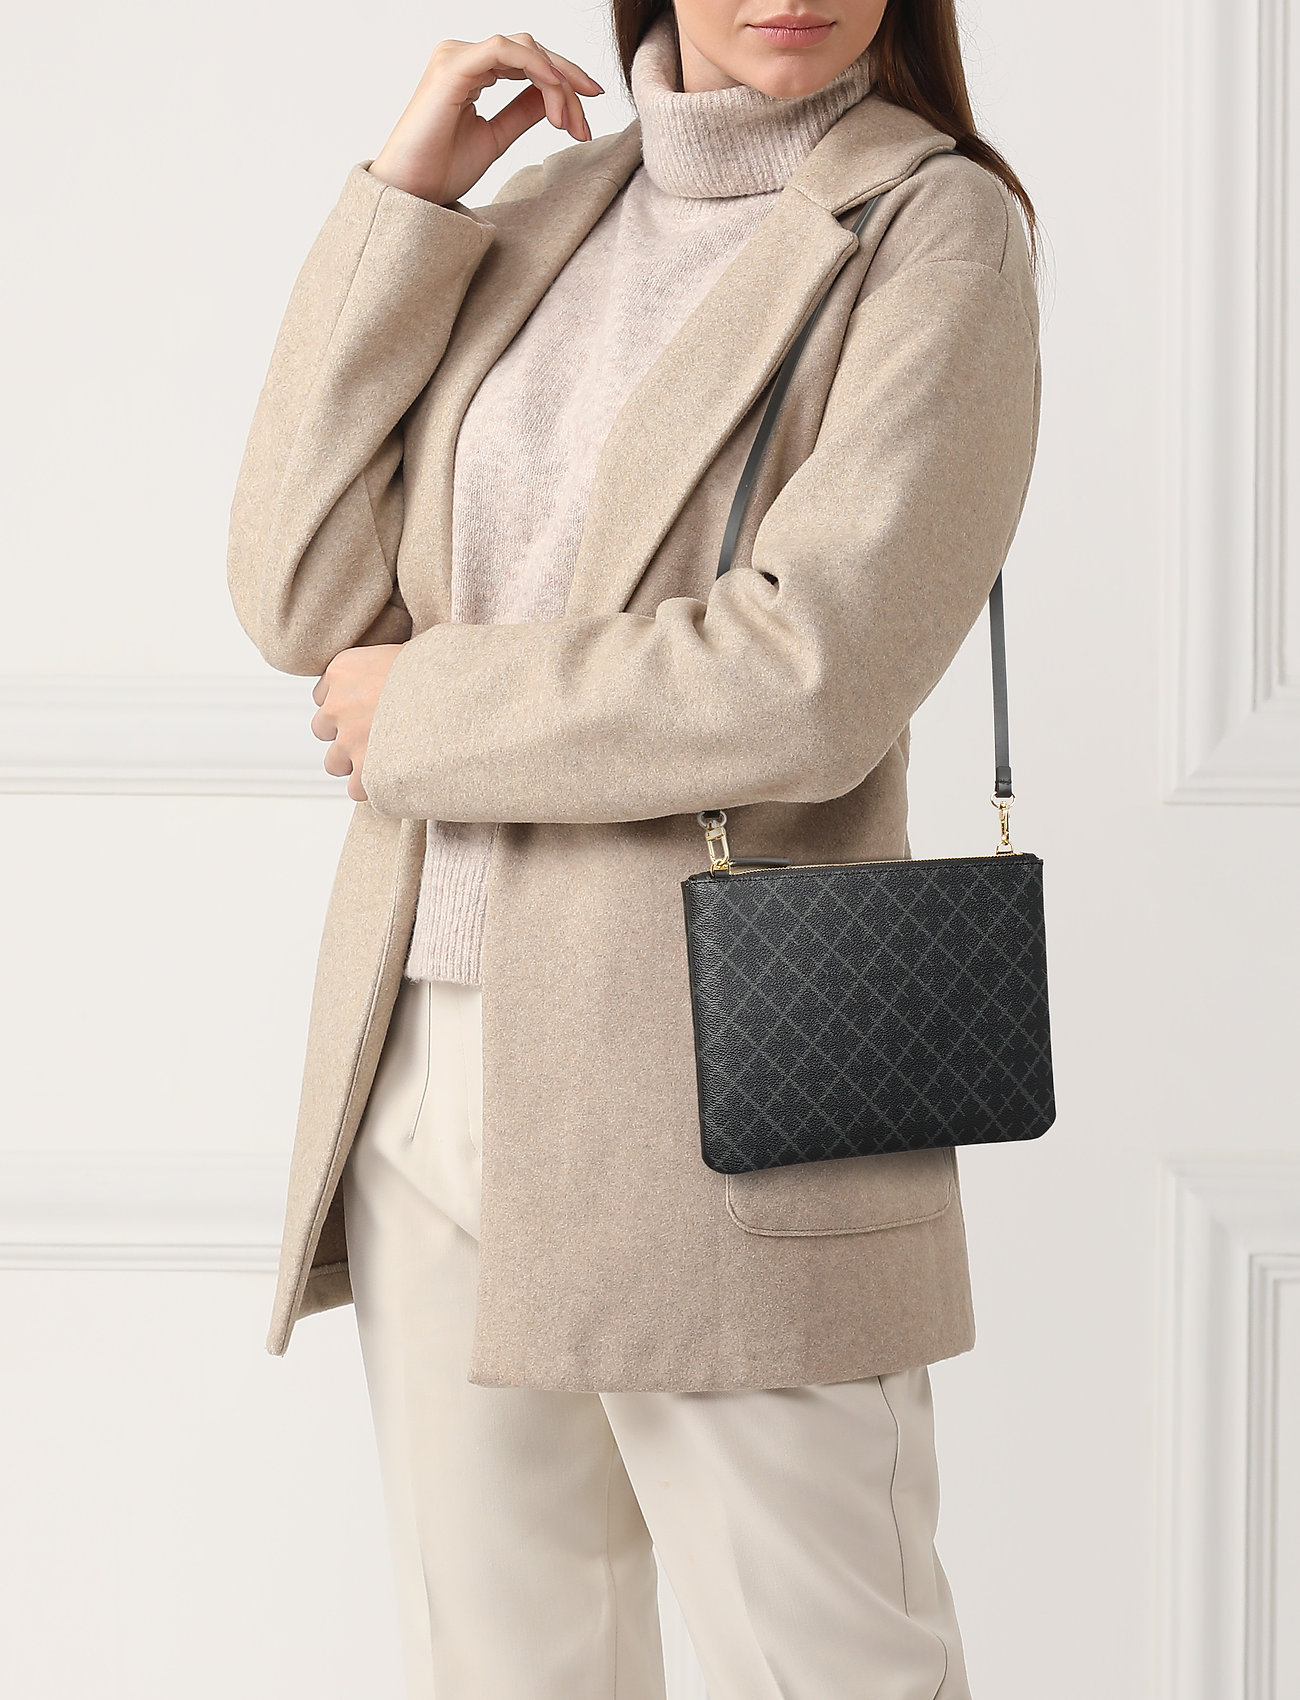 By Malene Birger IVY PURSE - CHARCOAL